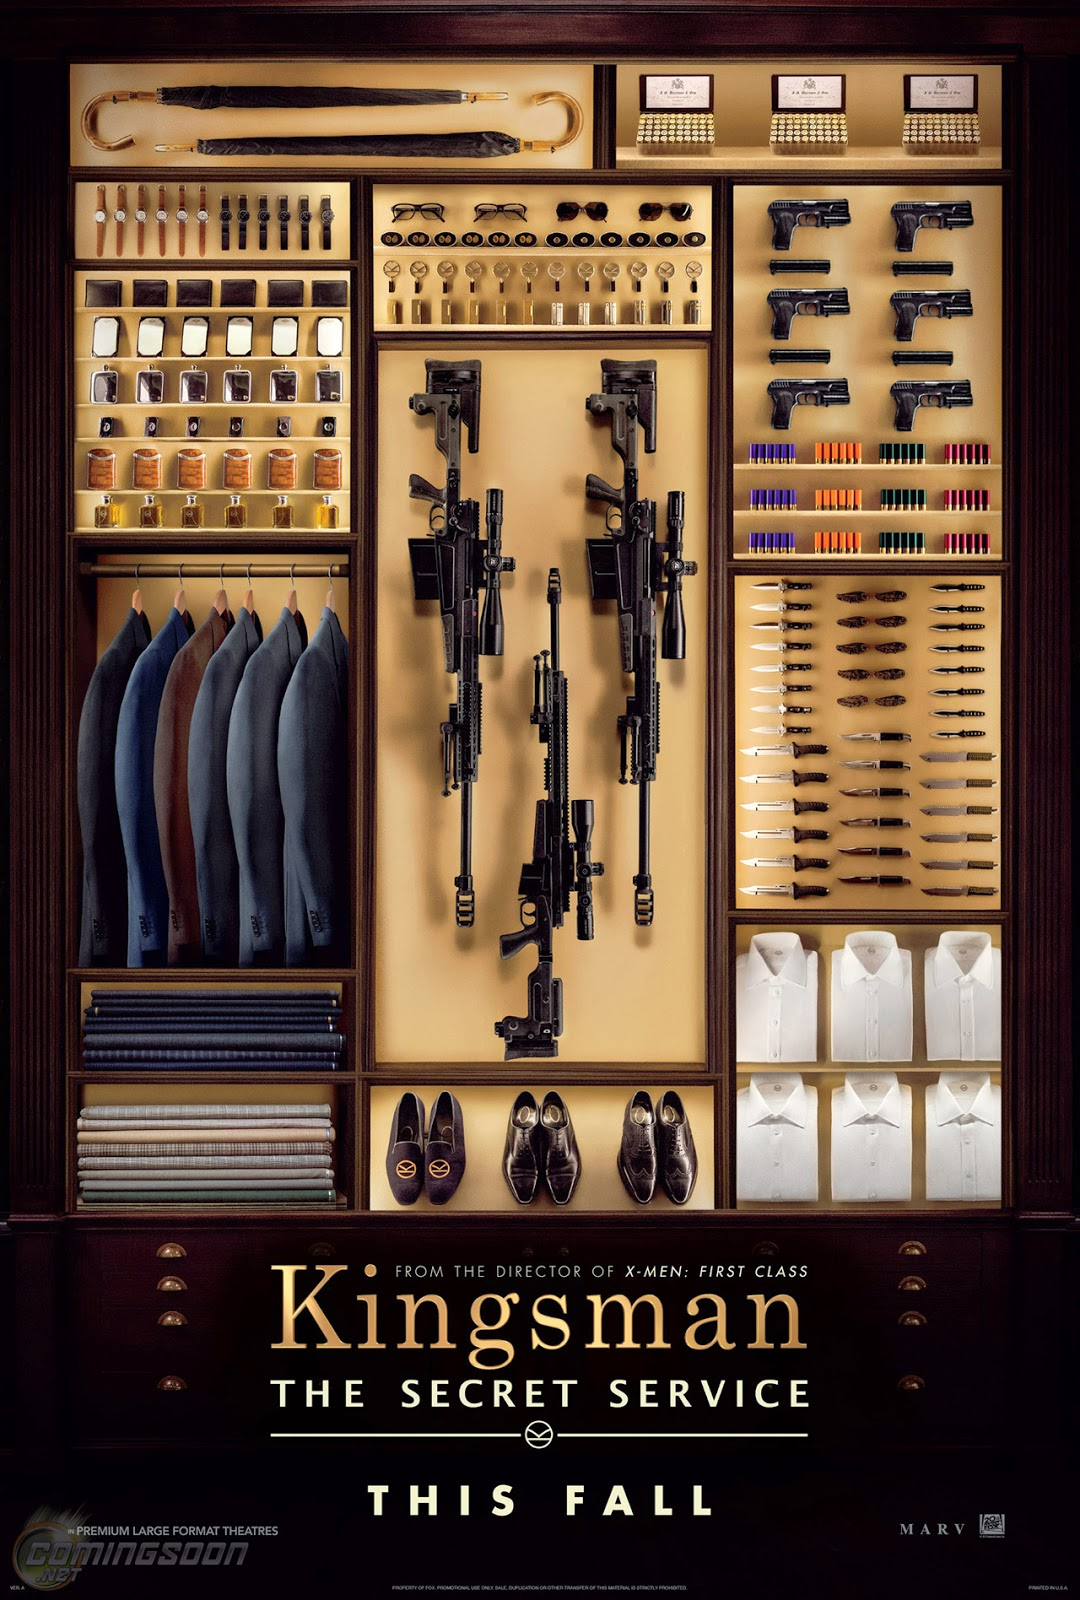 This is mine: Films I\u0026#39;m looking forward to: Kingsman: The Secret Service (Red Band Trailer)